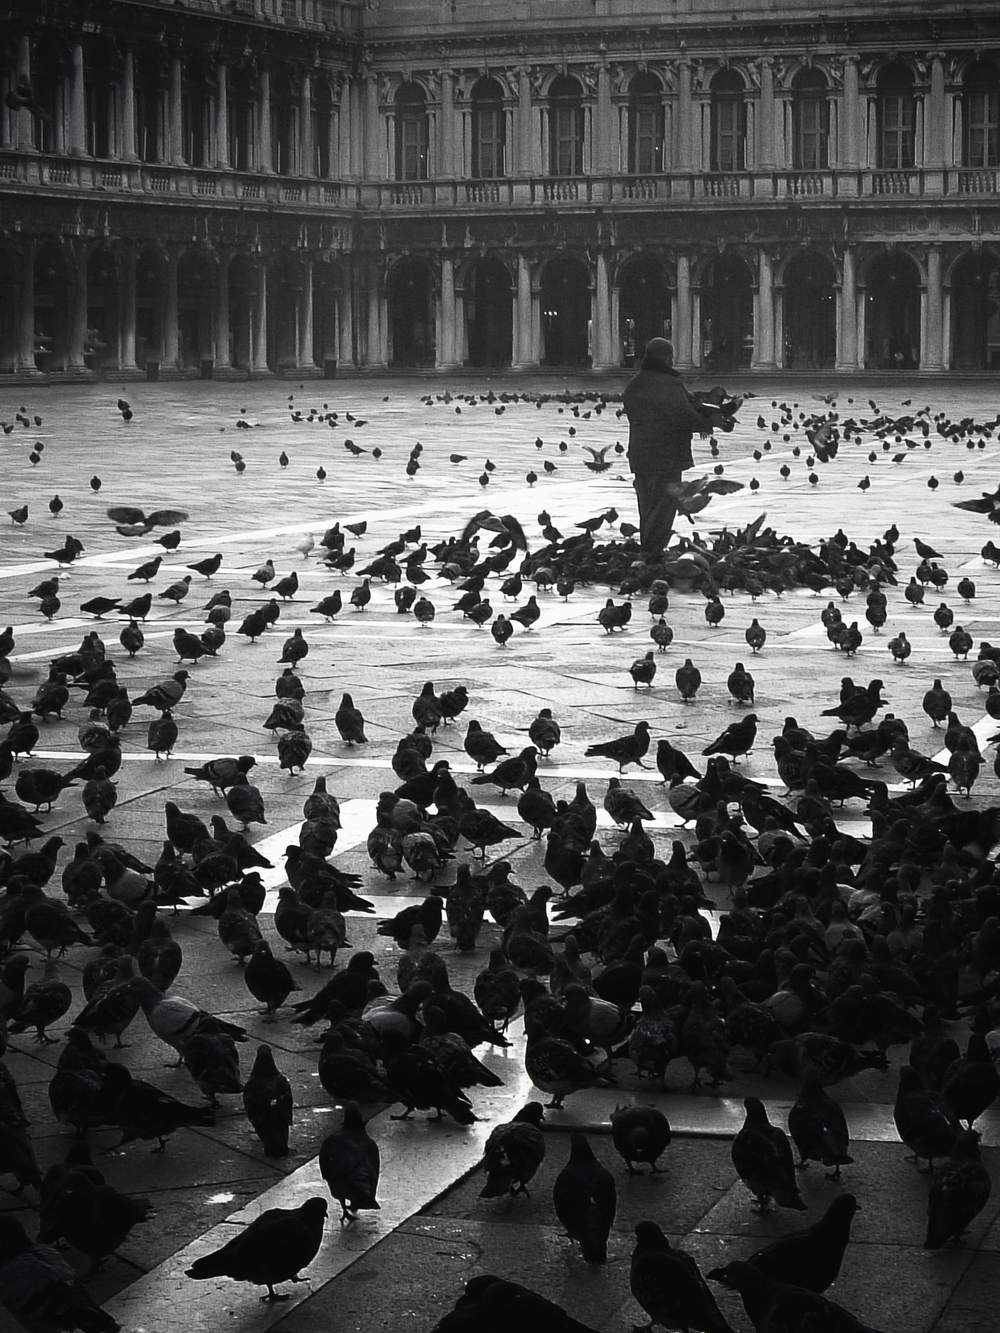 A few of the pigeons of the Piazza